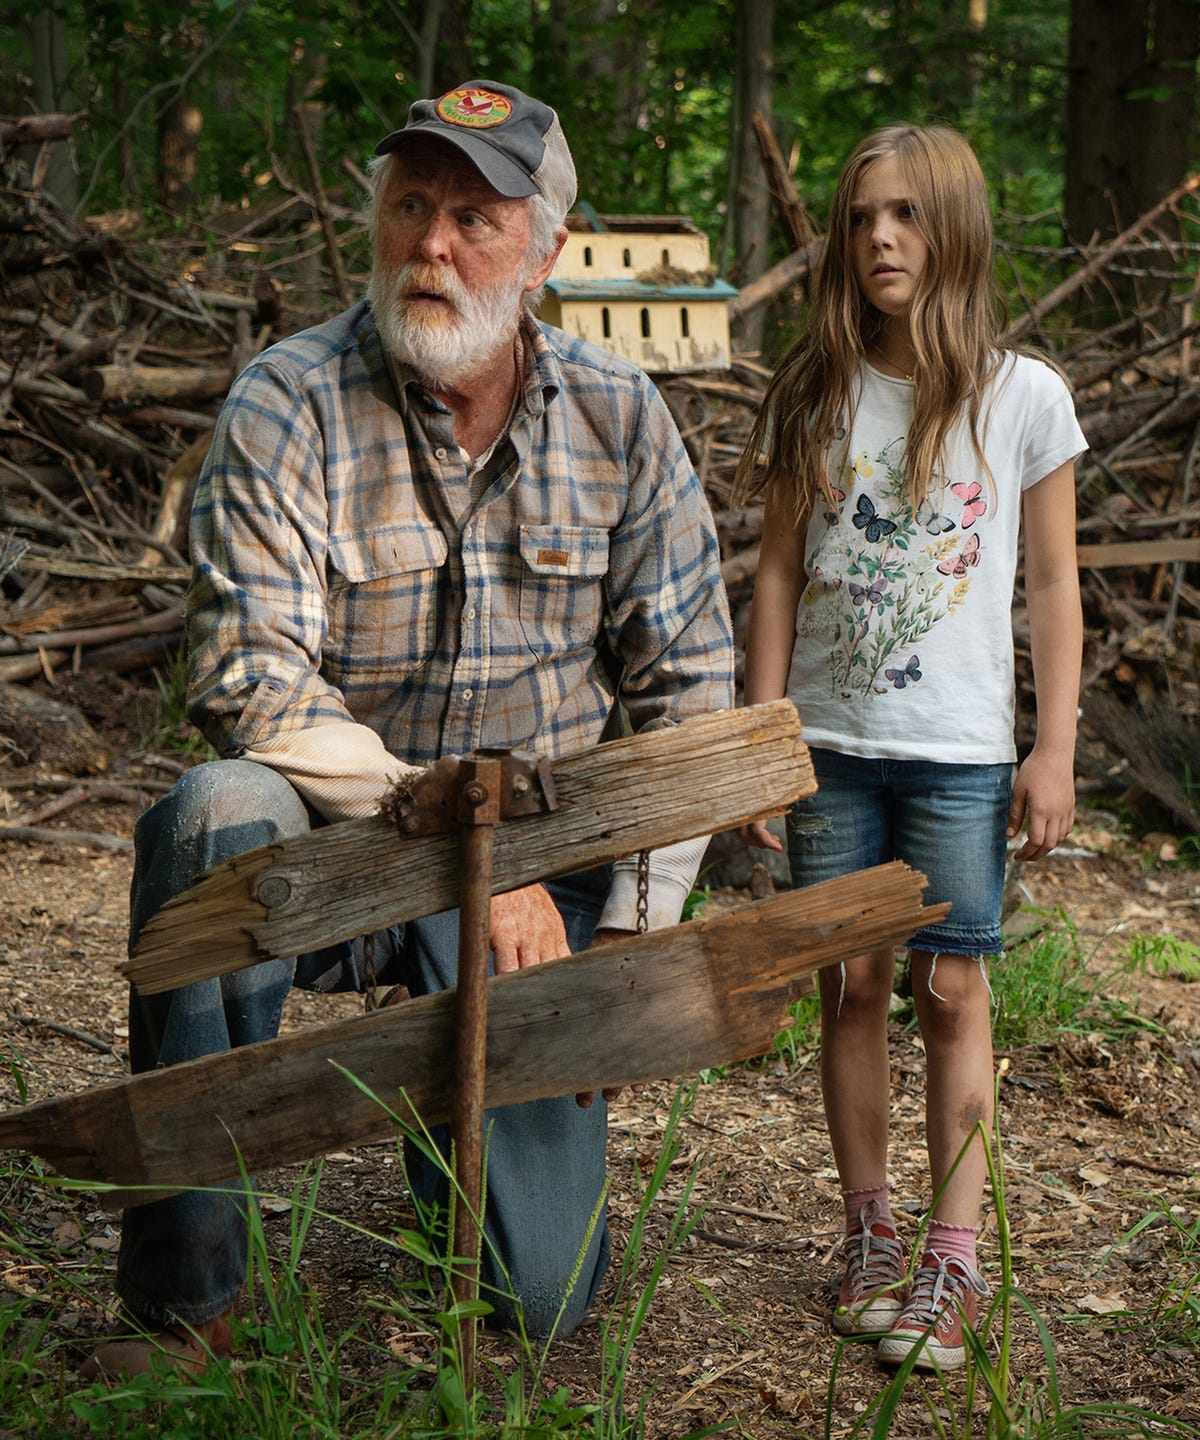 Pet Sematary Ending, Explained: What Happened To Gage